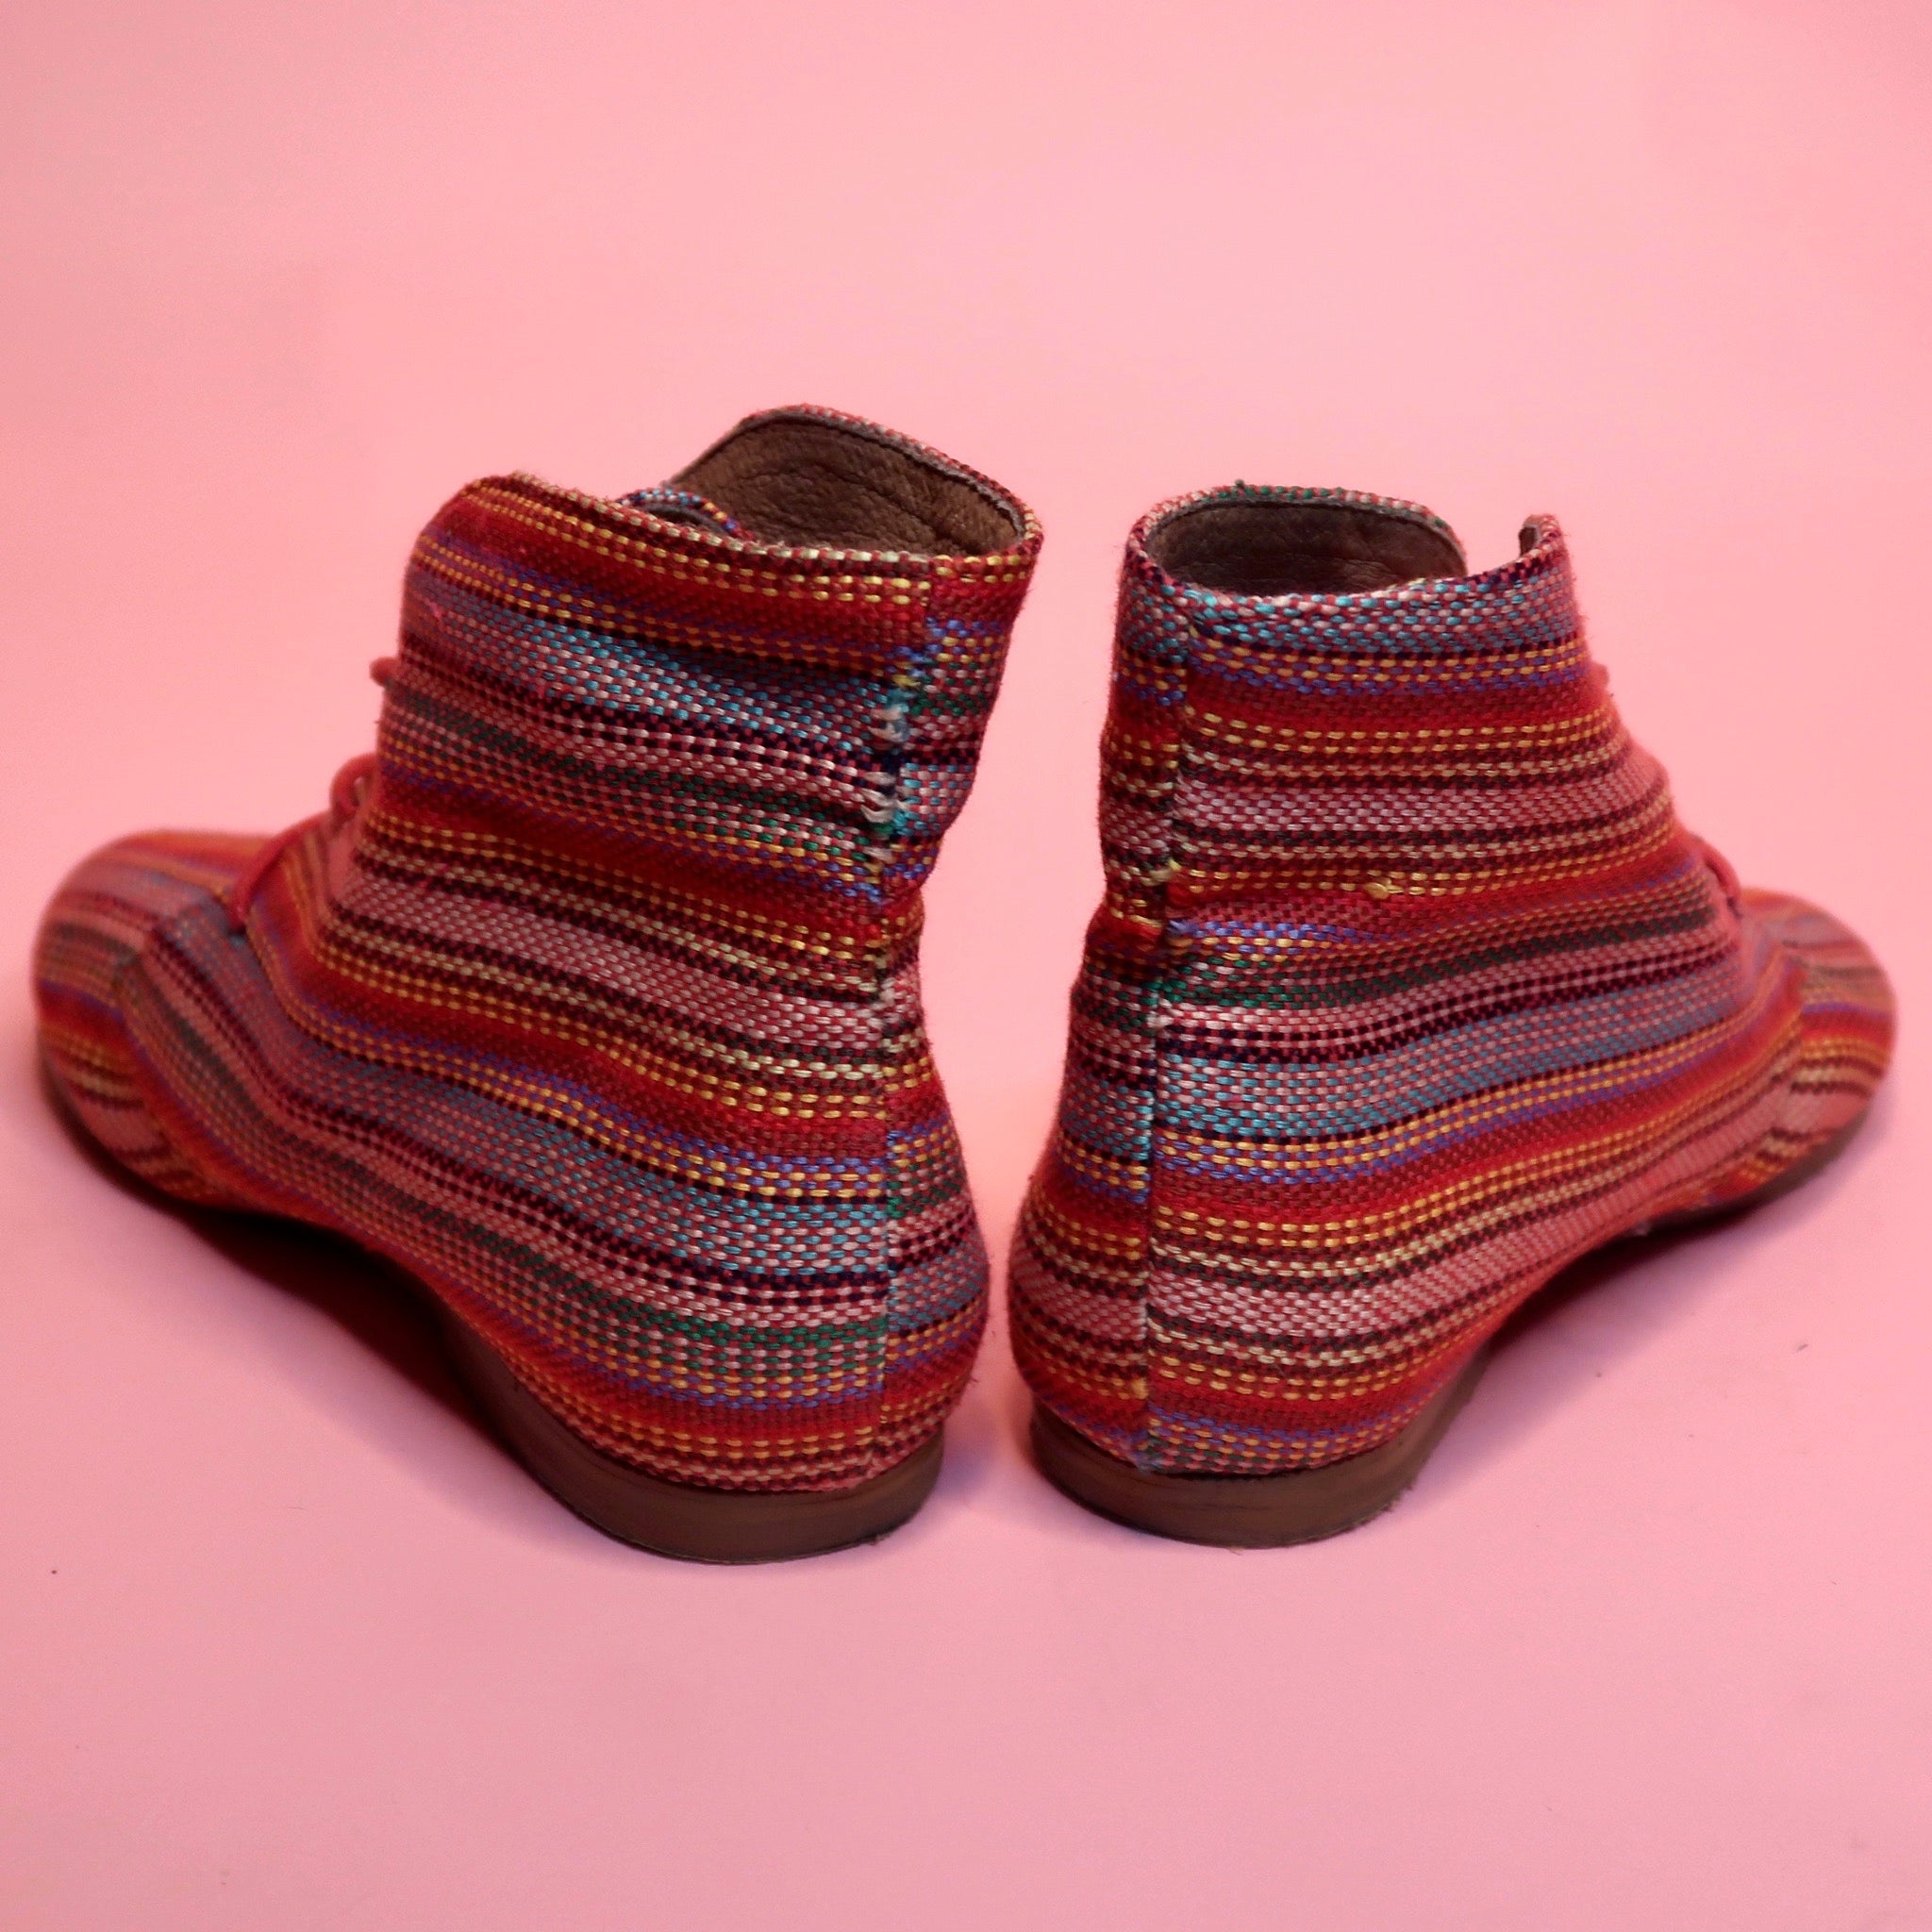 Jeffrey Campbell Ibiza Coachella Multi-Colored Booties - Everyday in Retrograde